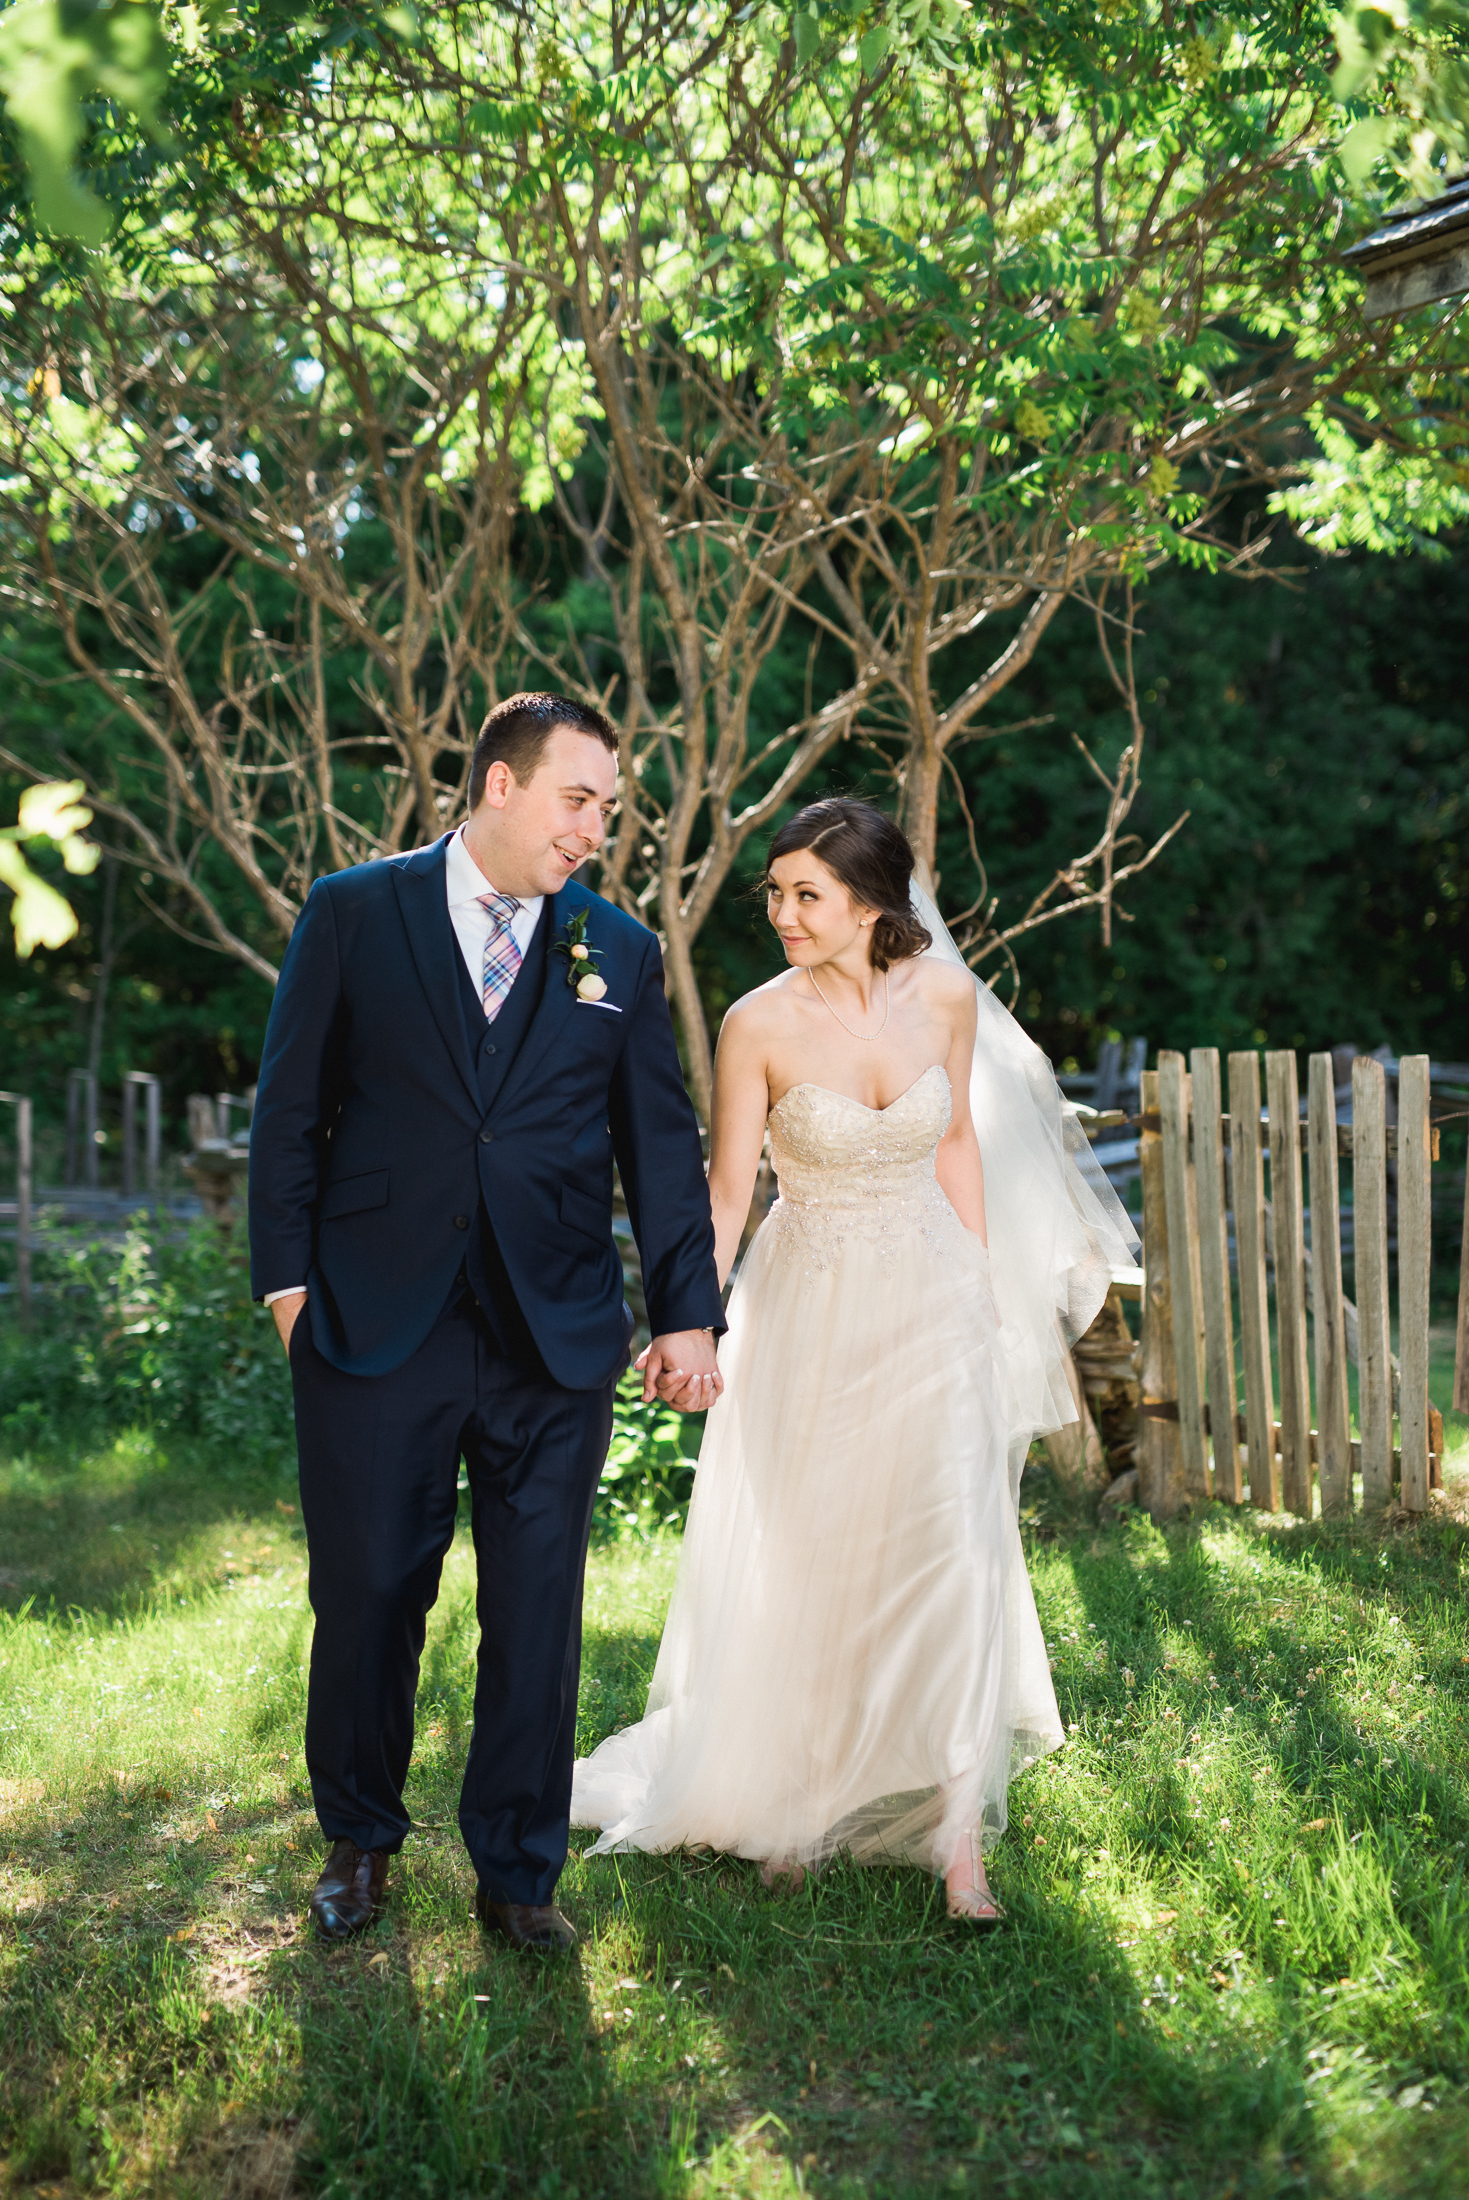 pickering_lakehouse_wedding_durham_region156